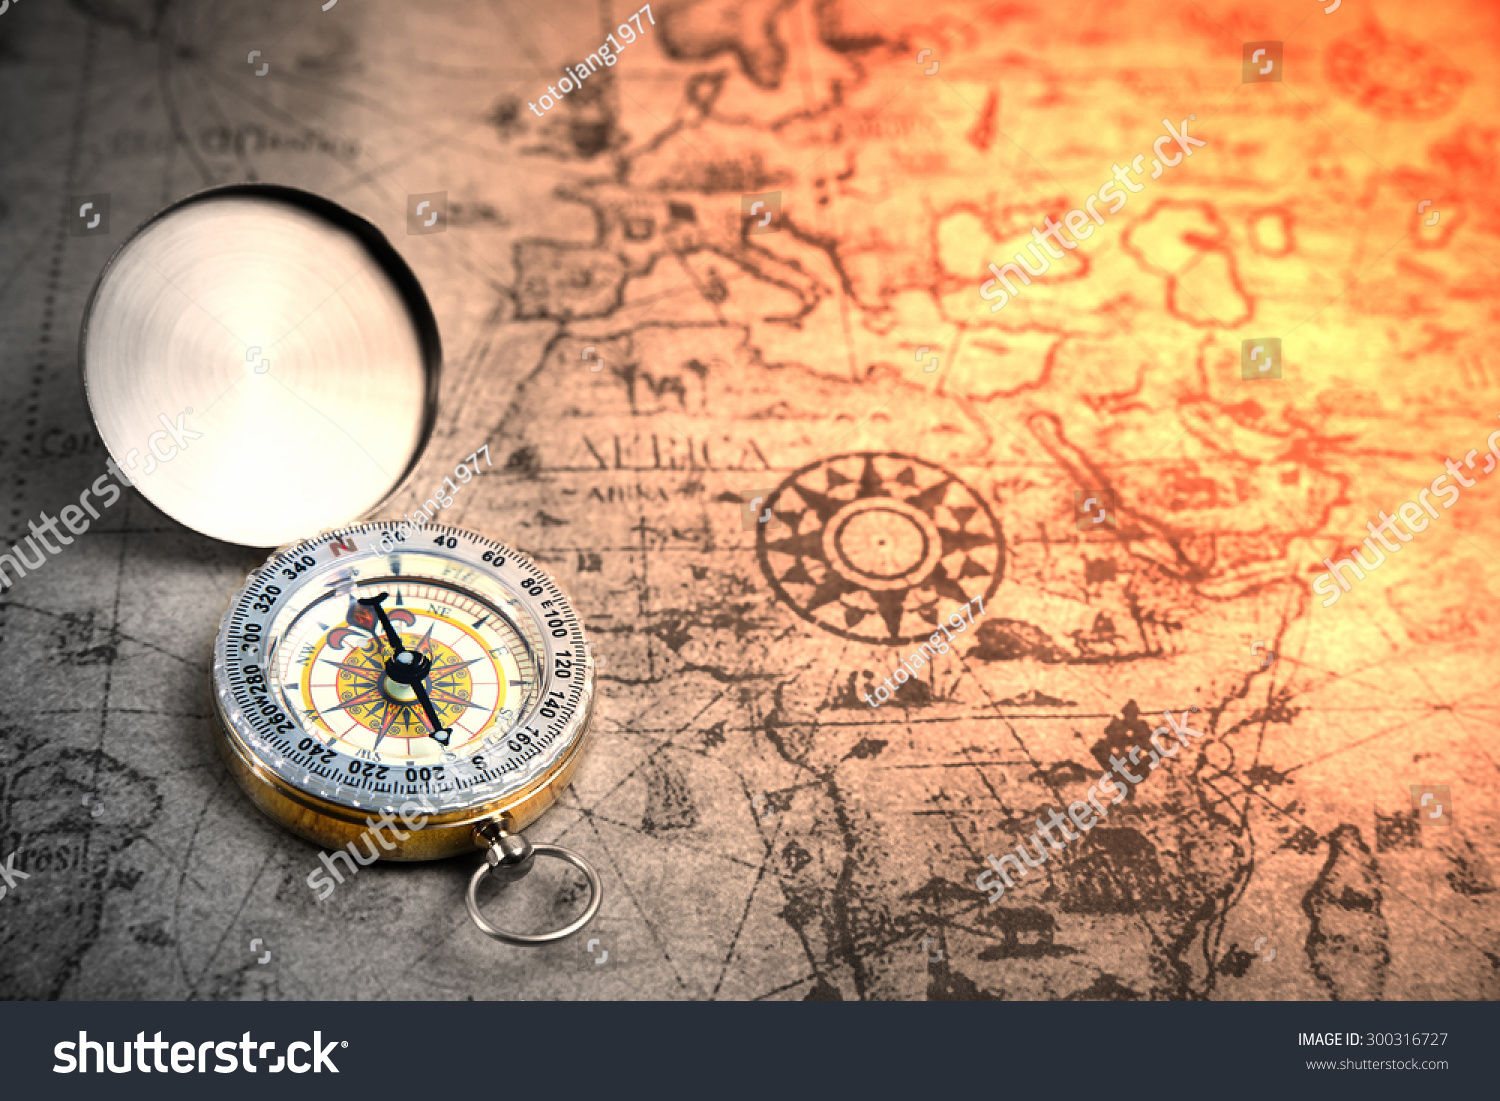 Retro compass on ancient world map stock photo royalty free retro compass on ancient world map vintage style gumiabroncs Image collections